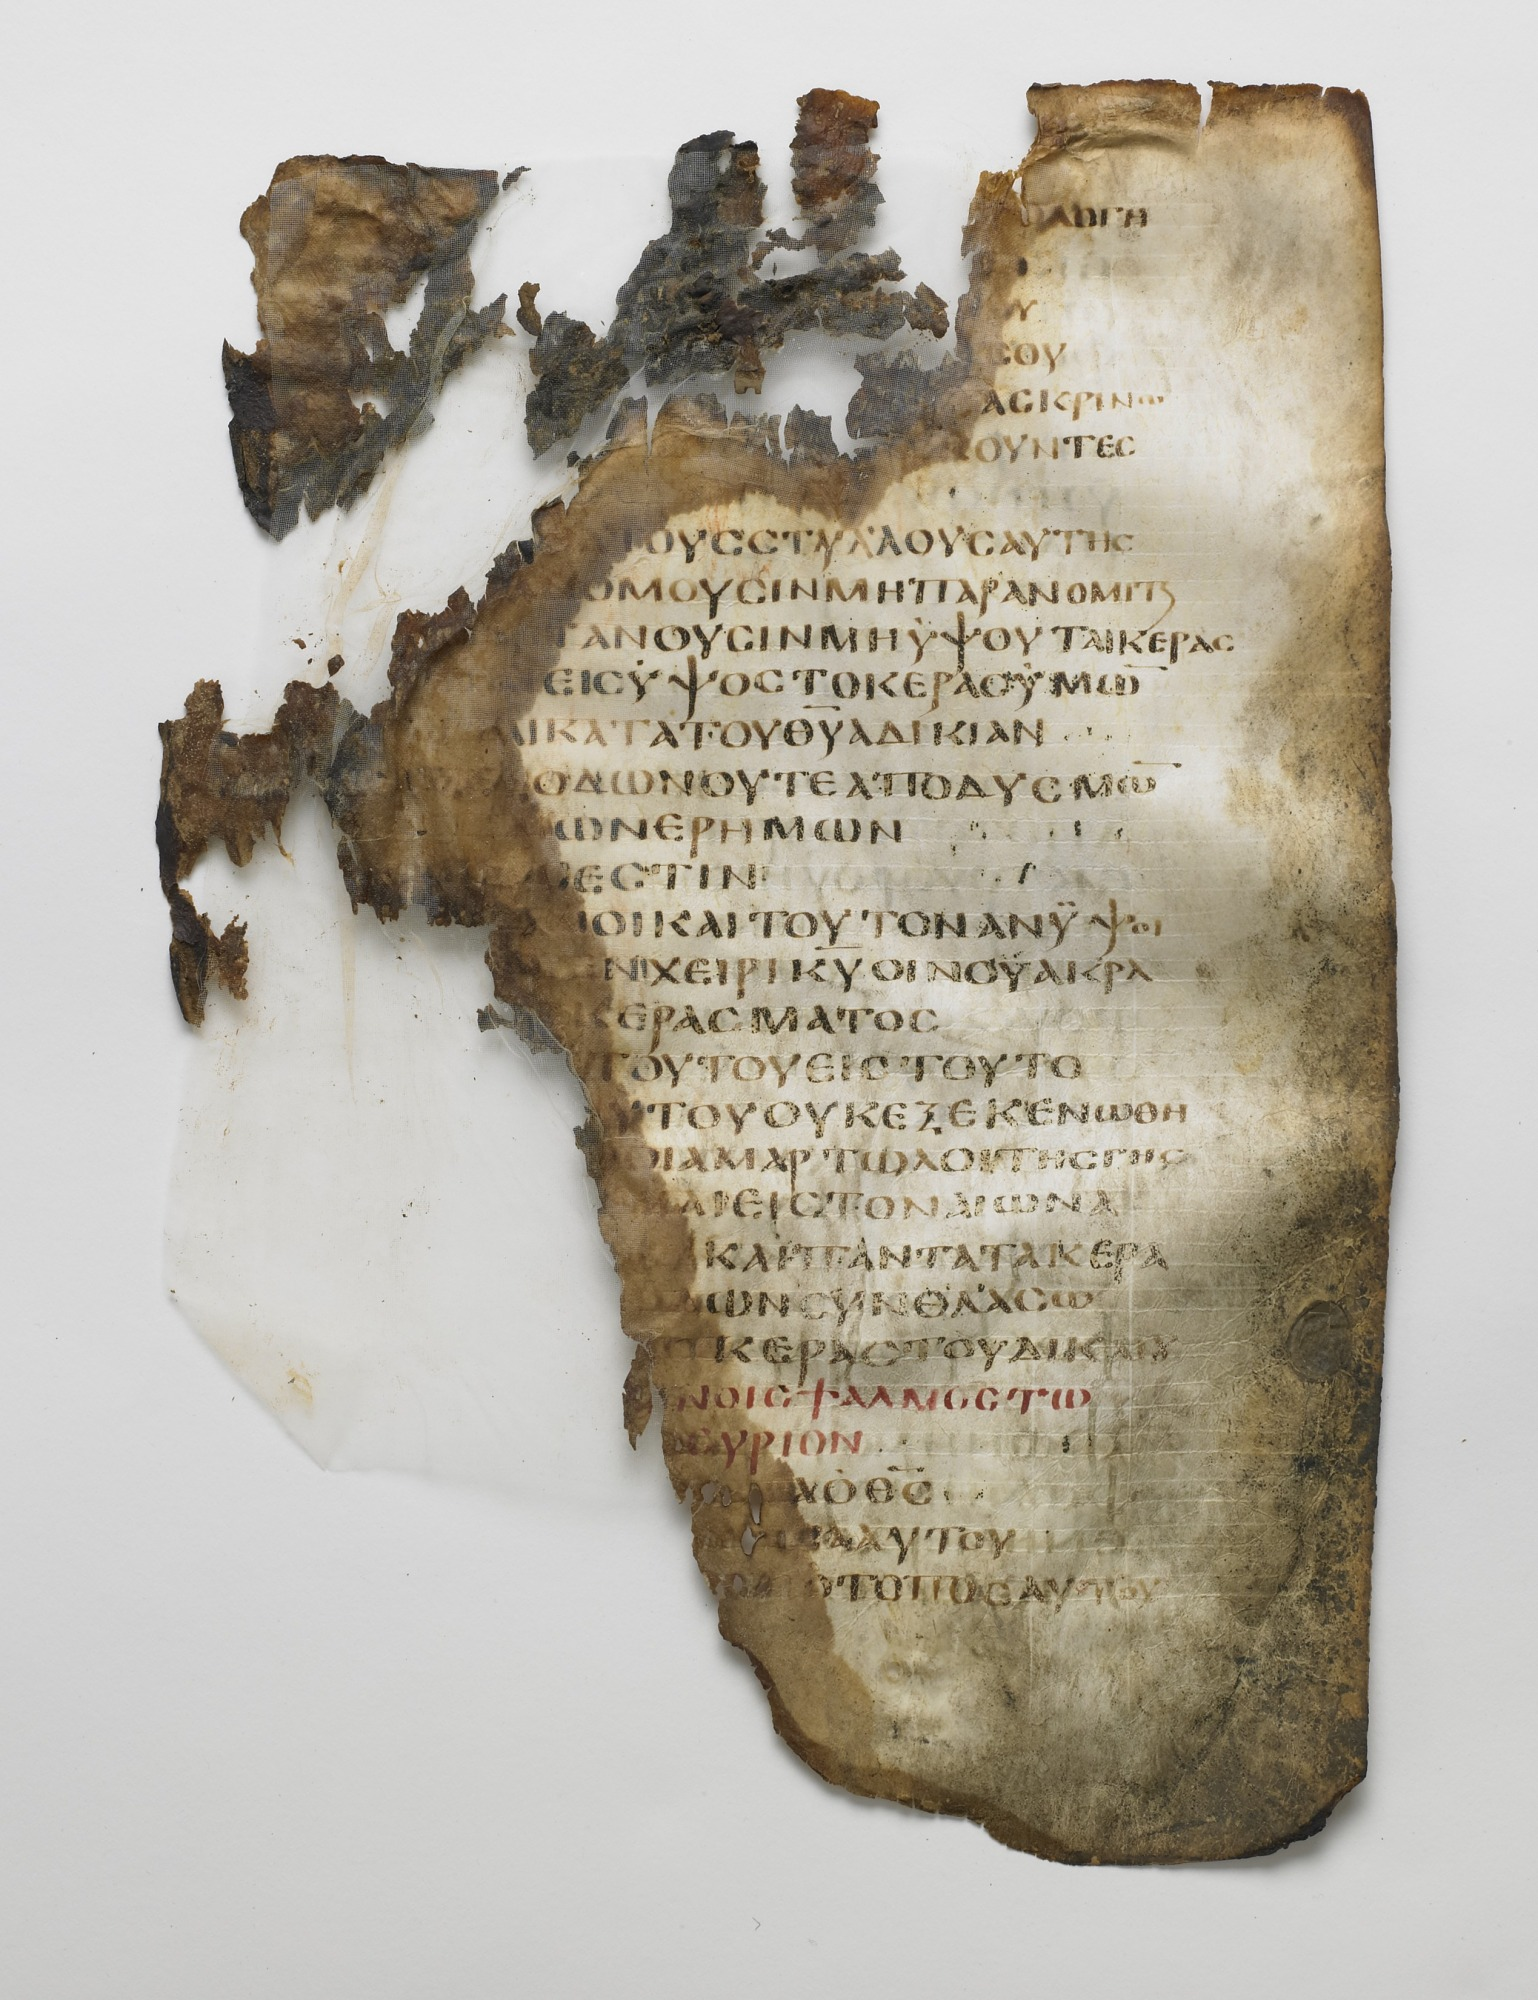 109: Washington Manuscript II - The Psalms (Codex Washingtonensis)